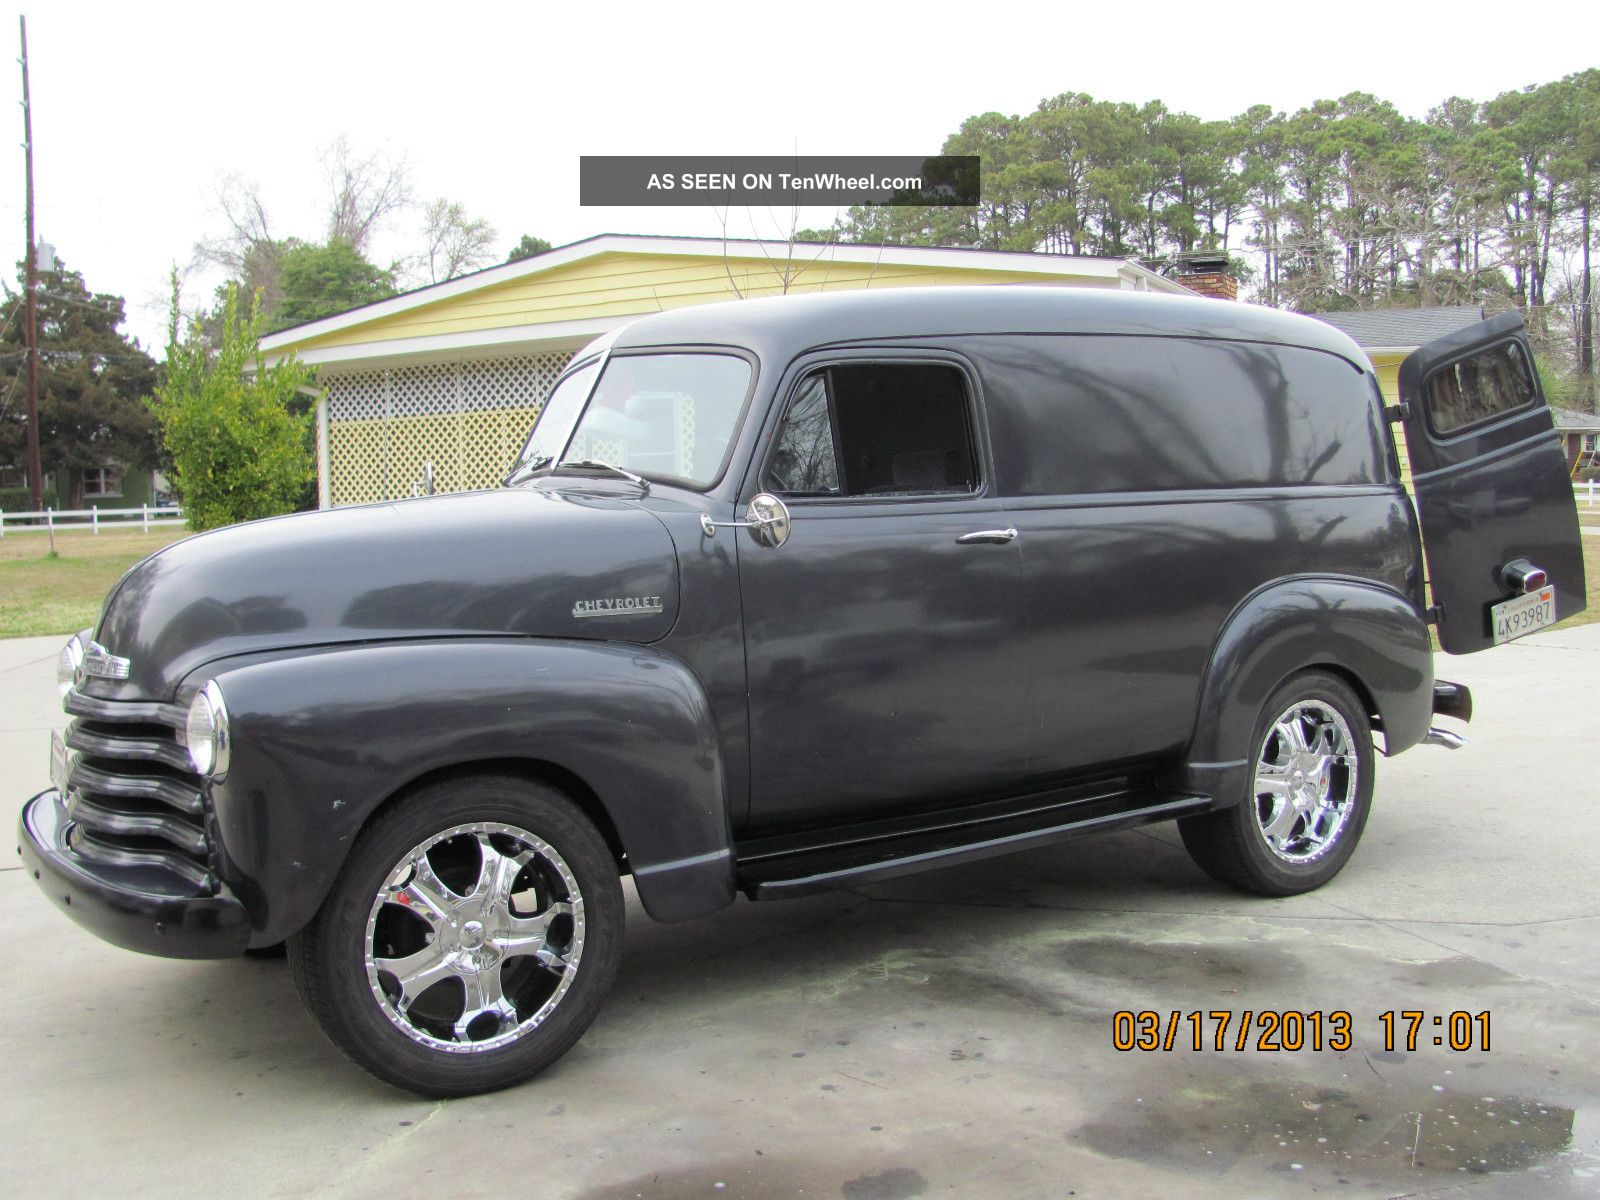 Chevy Sedan Delivery Lgw on Ford Straight 6 Engine Specs